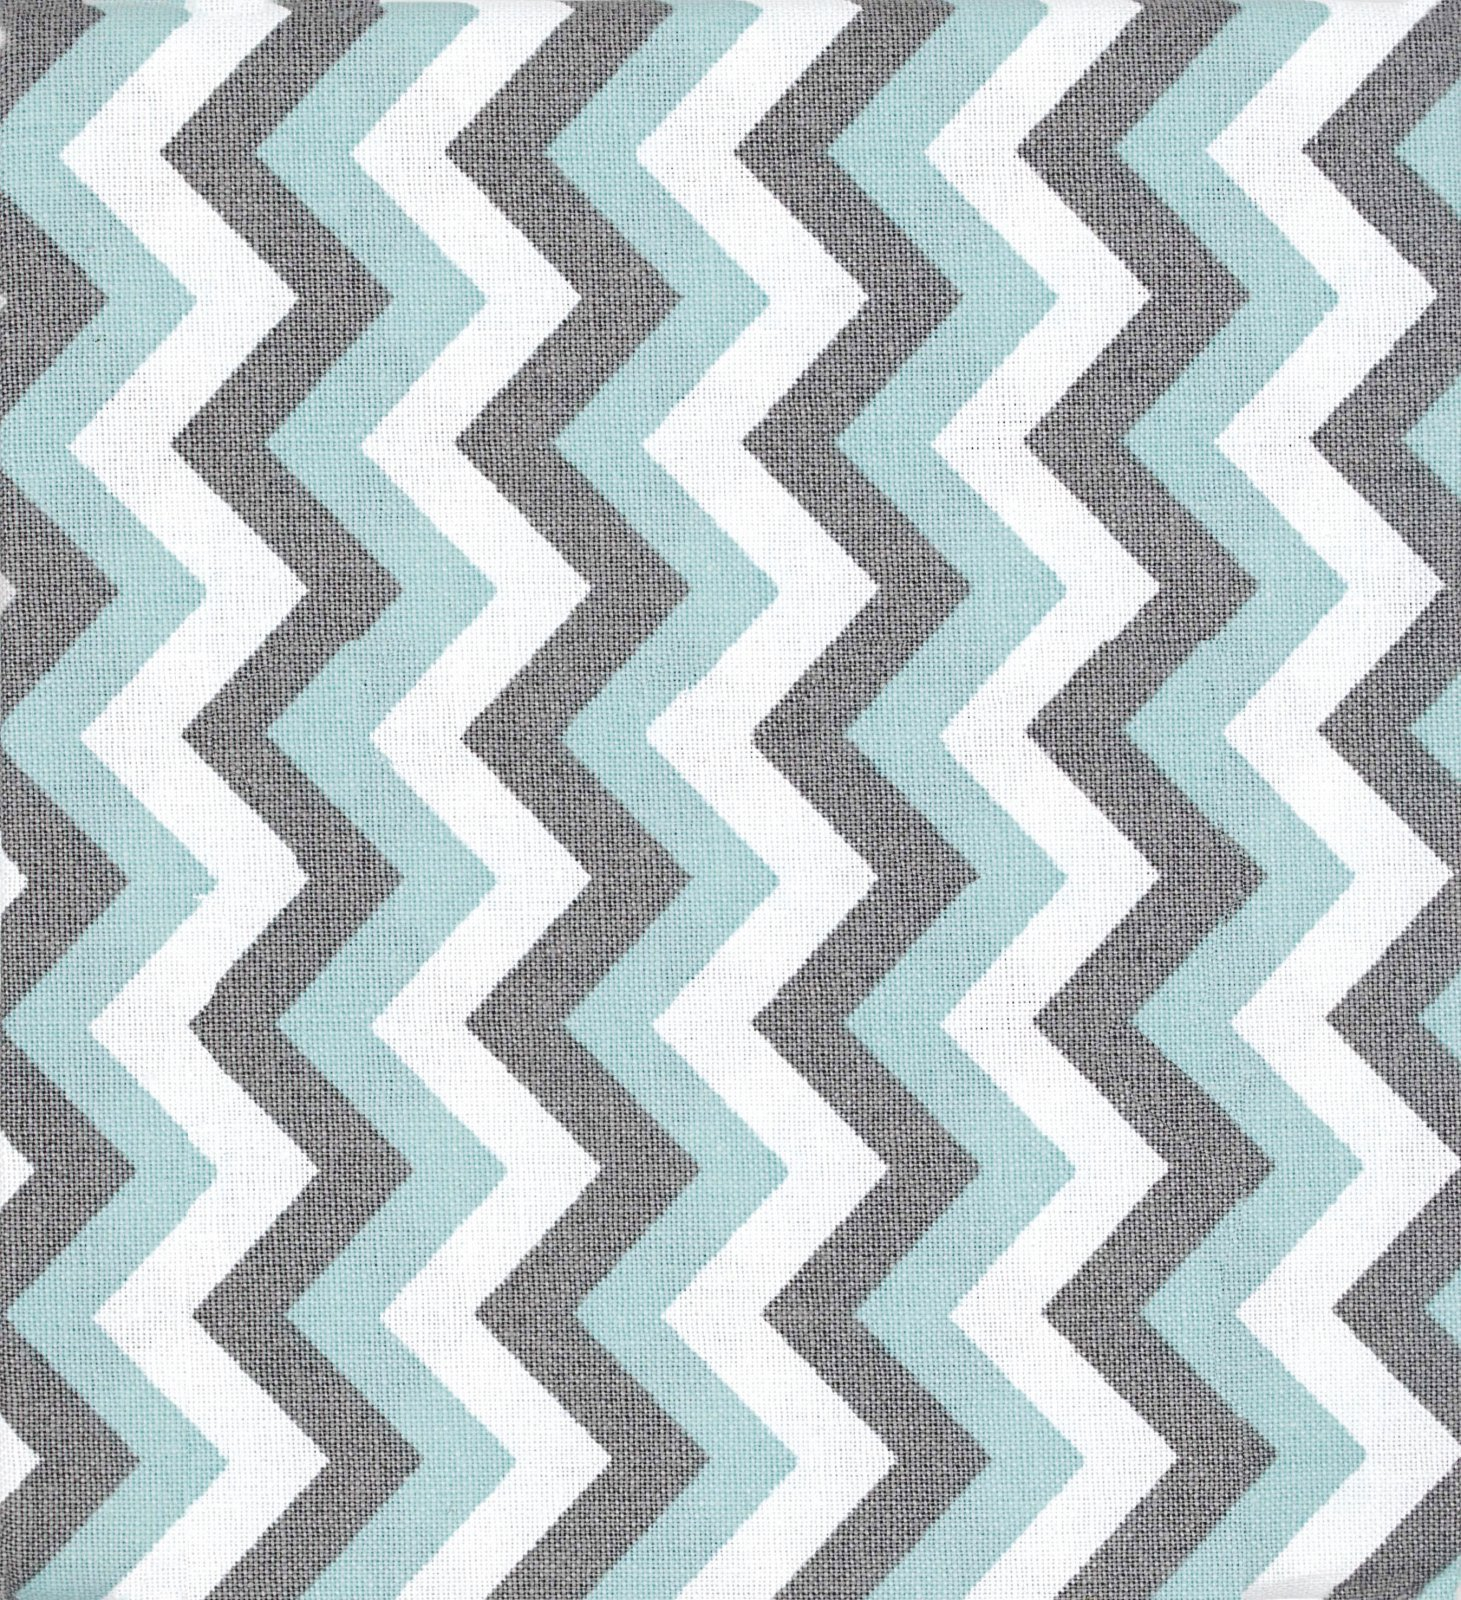 Fabric Palette Fat Quarter <br>Turquoise - Design may vary <br>MD-G-PC361